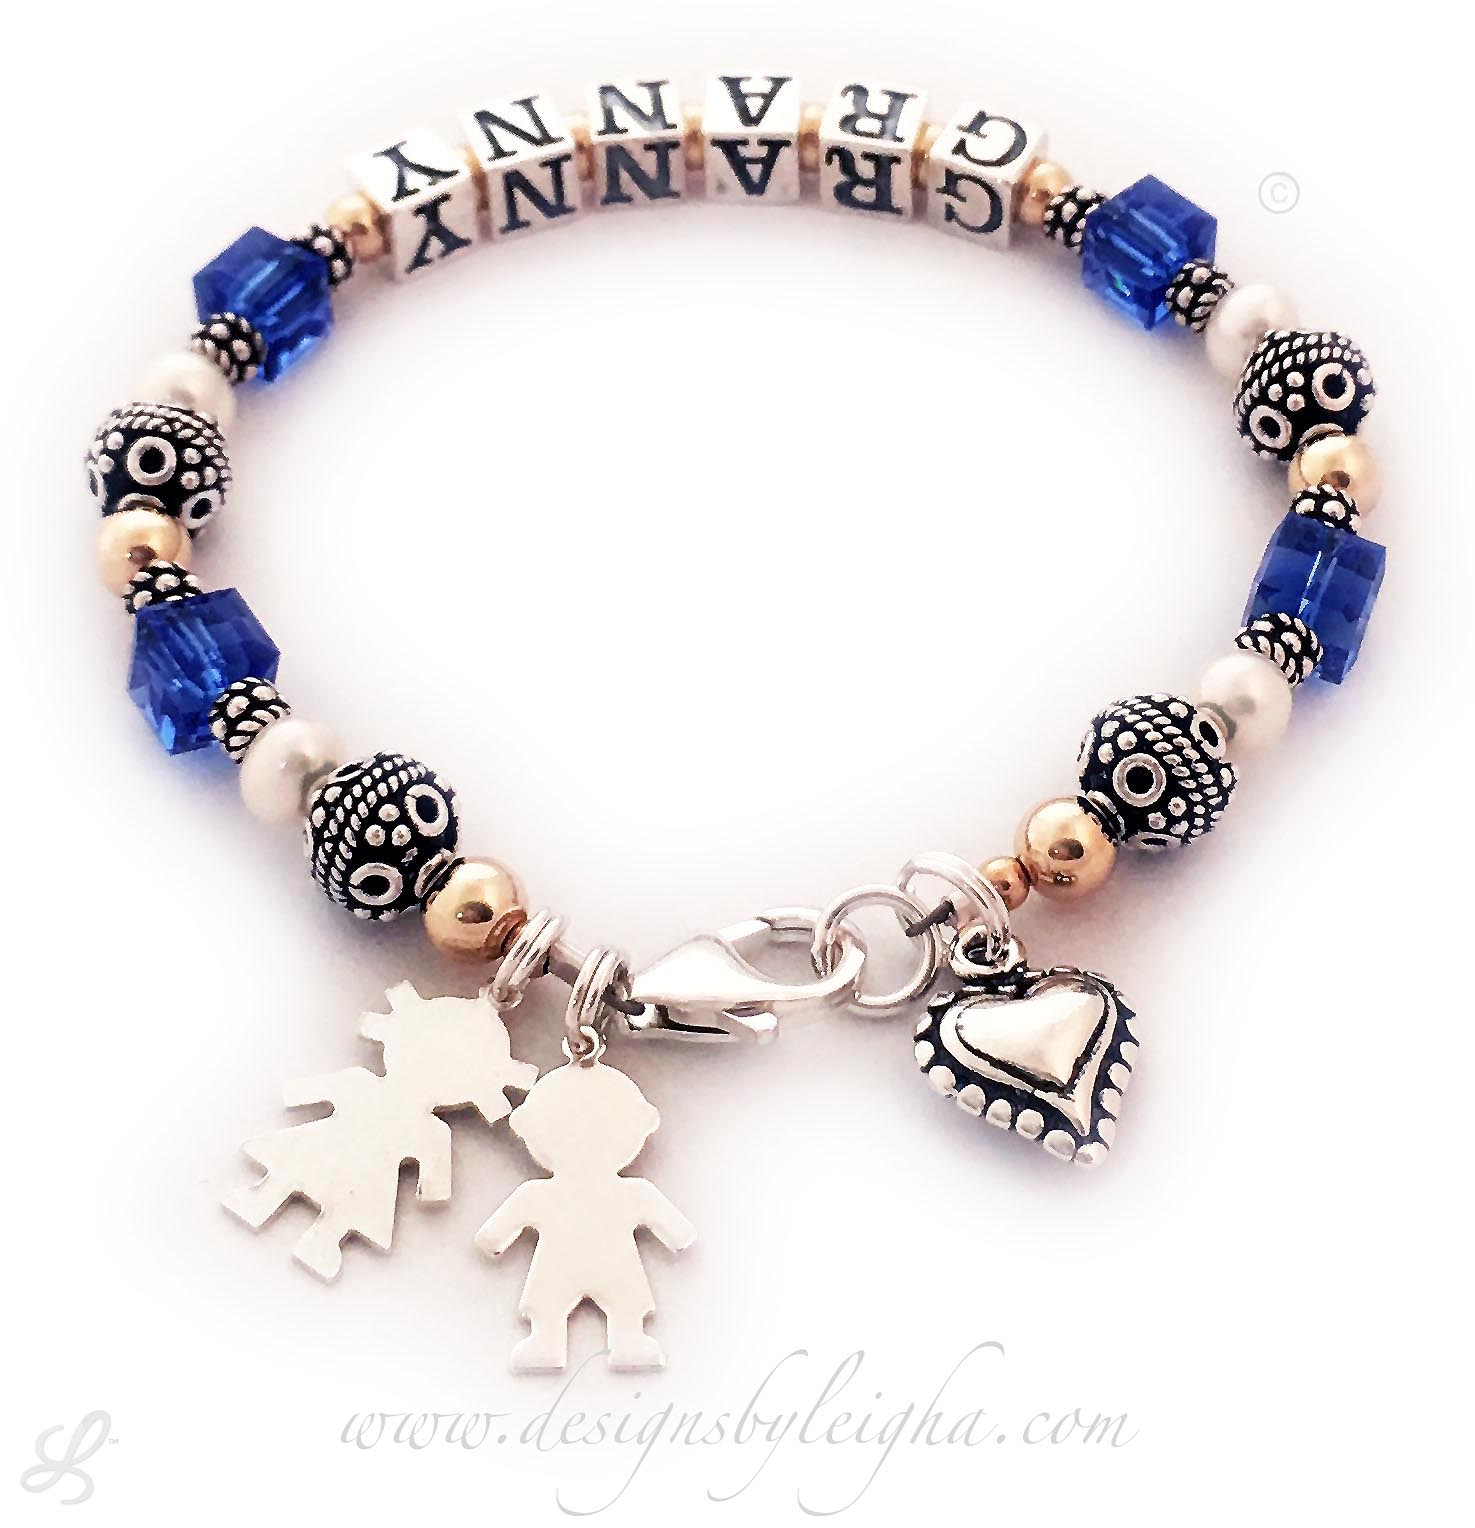 This Grammy Bracelet is shown with GRANNY and September or Sapphire Swarovski Square Crystals and one of my free Sterling Silver Lobster Claw Clasp. You choose the name(s). They added 3 things to their order... A Boy Cutout Charm, Girl Cutout Charm and a Beaded Heart Charm.